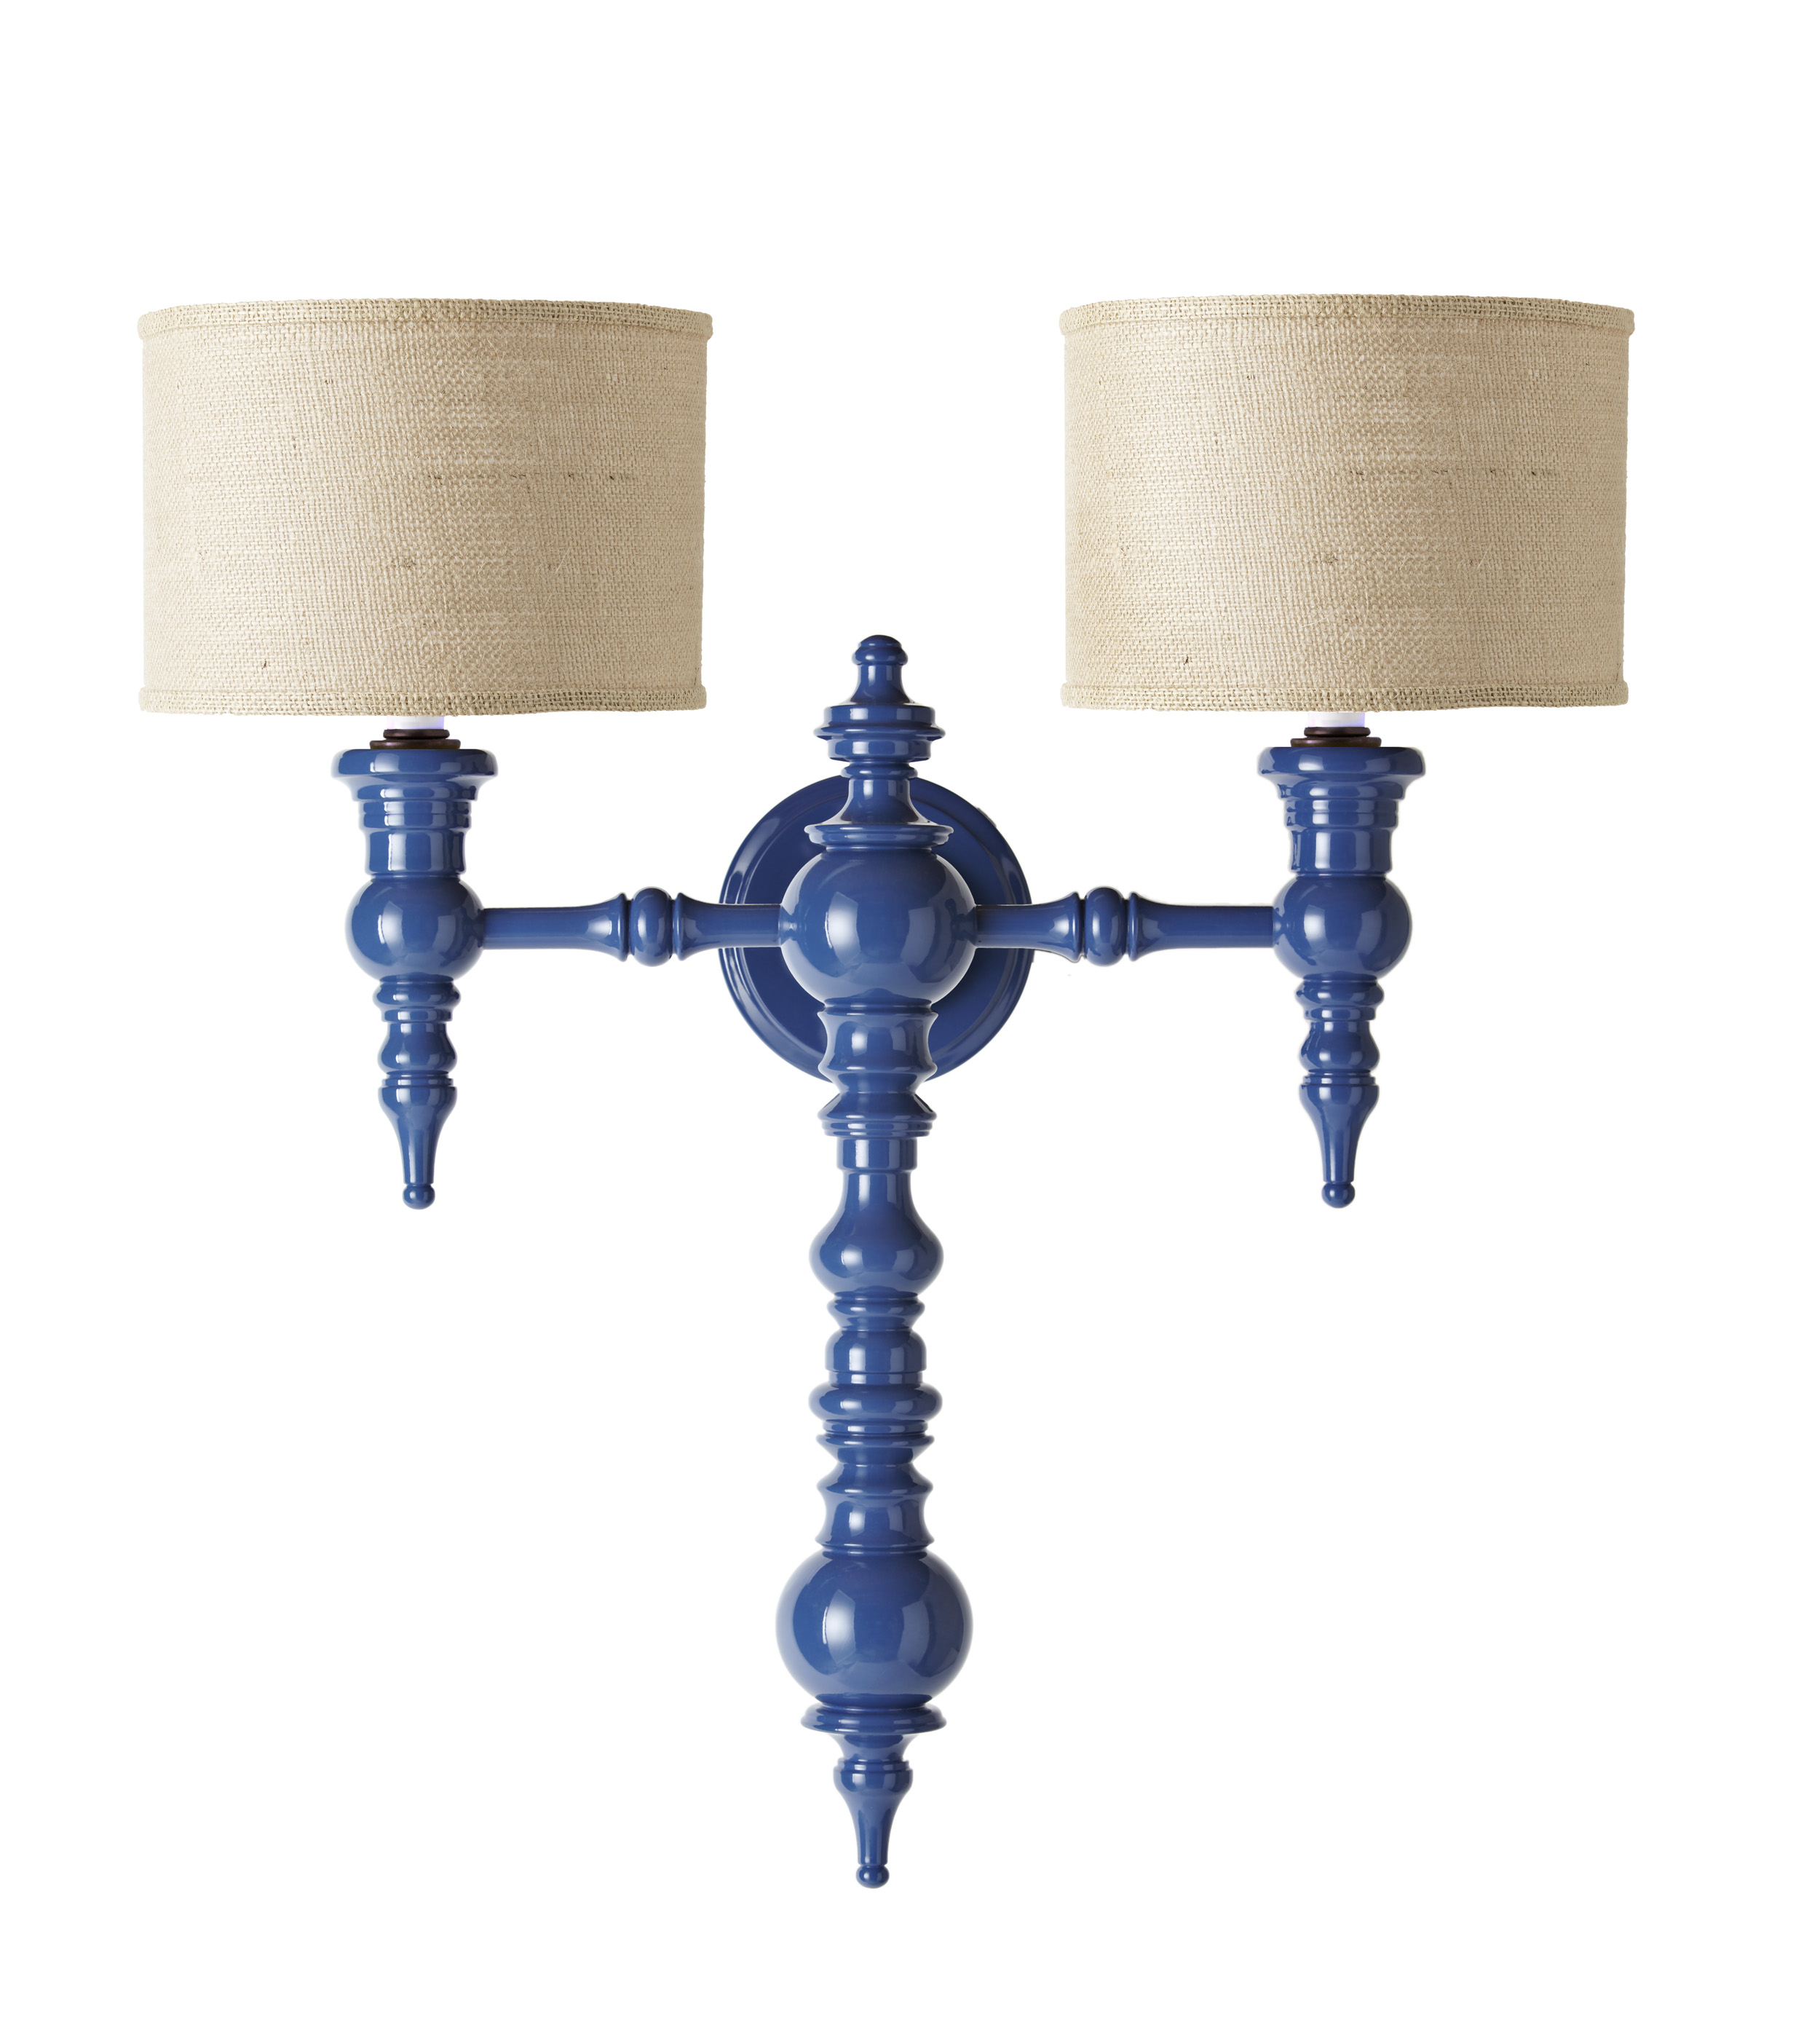 sconce_double_rachel_commodore_of_the_yacht_club_blue.jpg